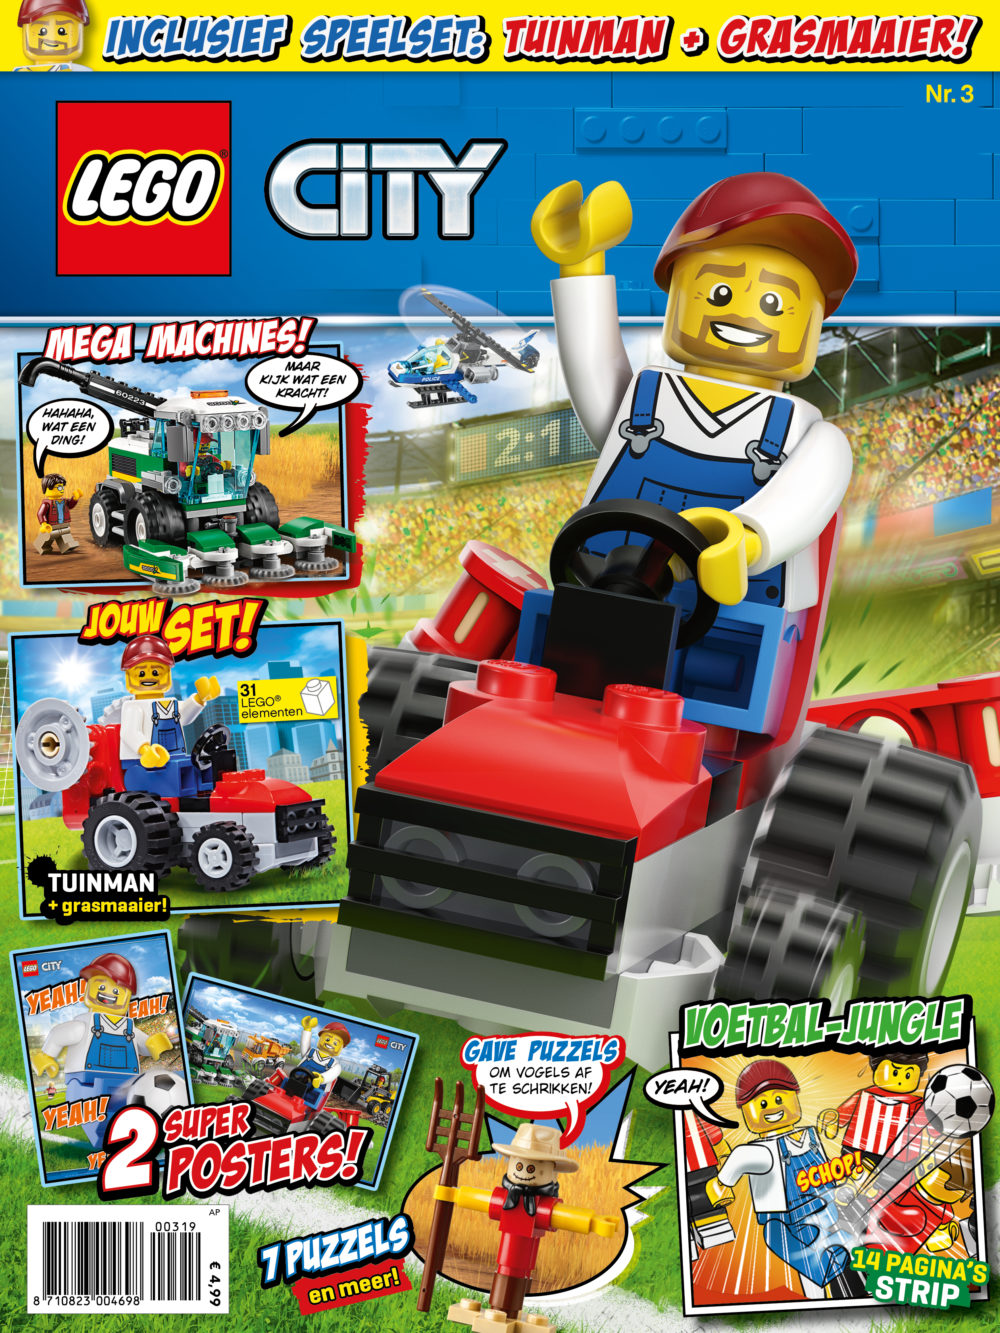 LEGO City magazine_03_2019